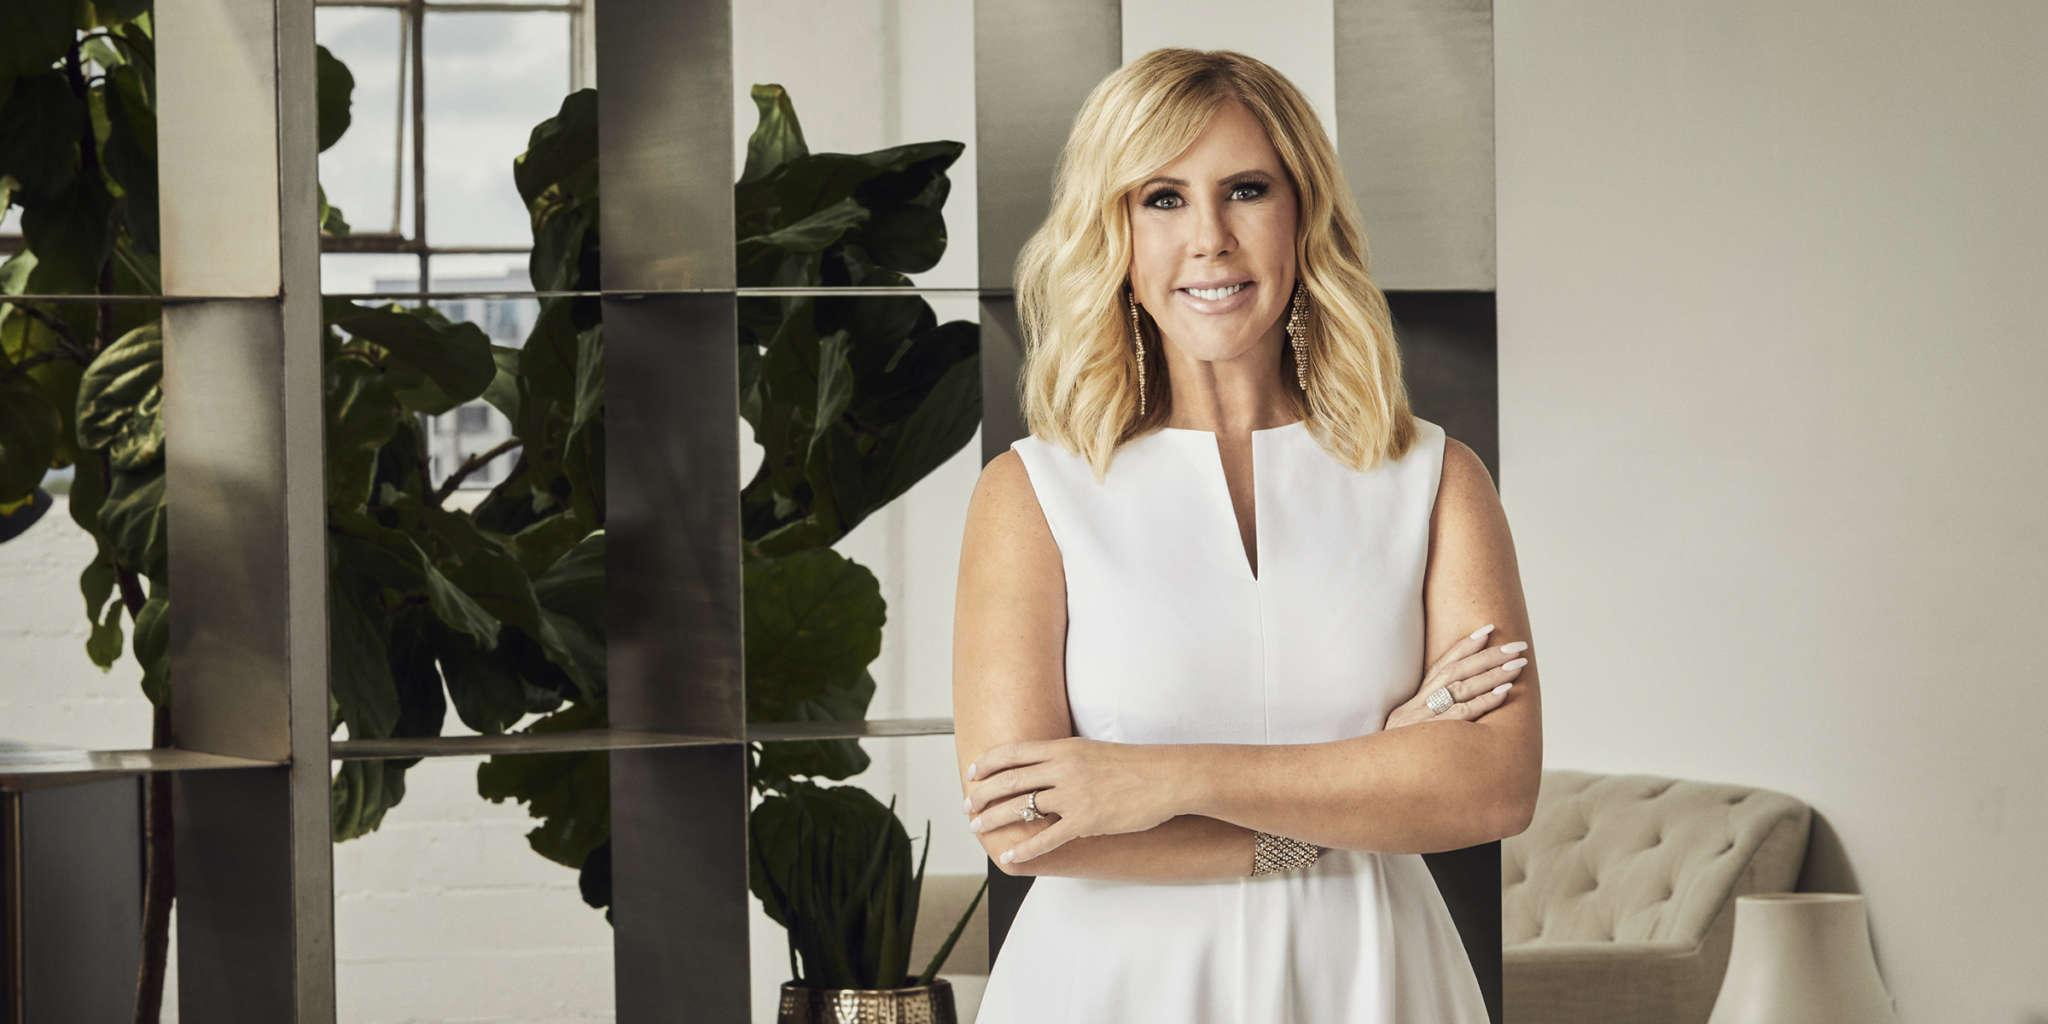 Vicki Gunvalson 'Sad And Disappointed' She's Been Demoted To A 'Friend' Of The Housewives